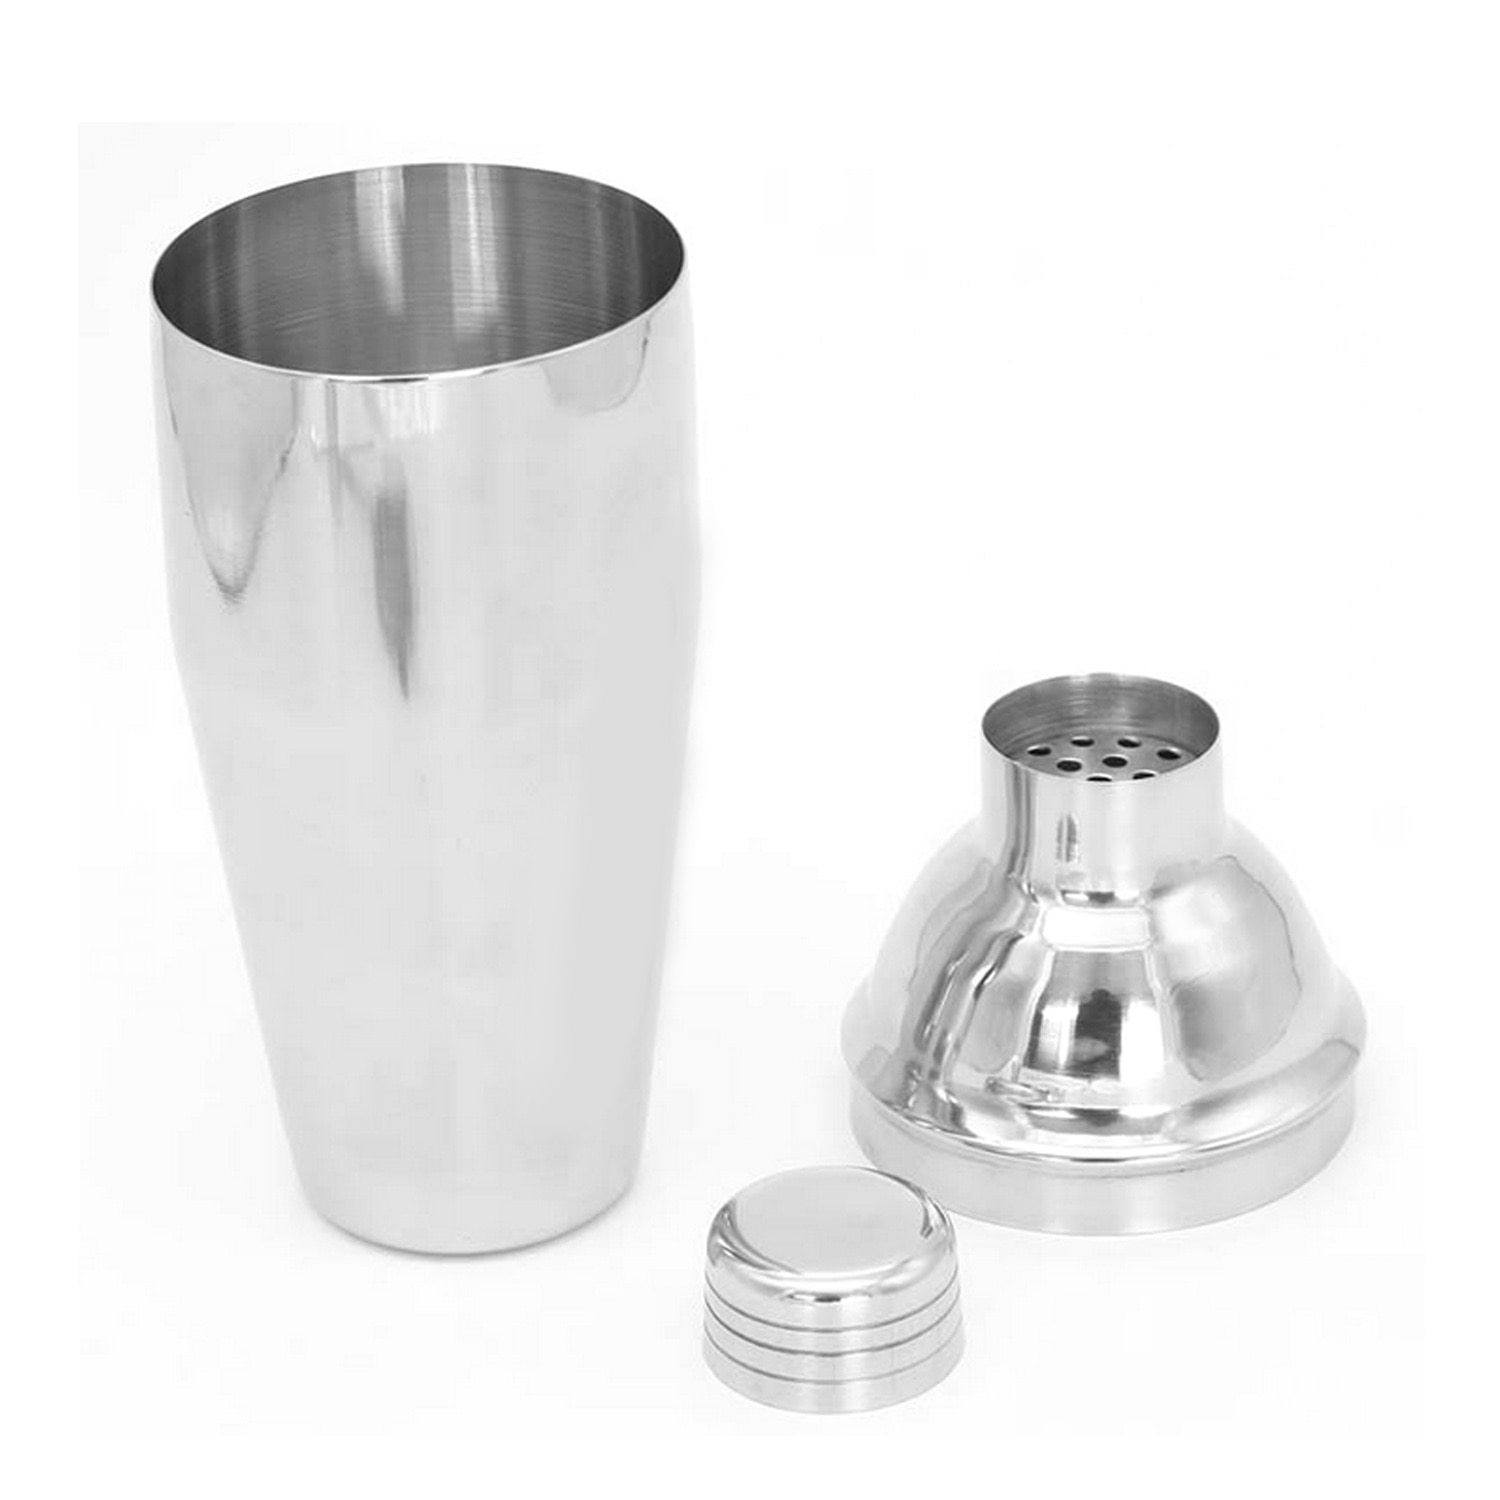 Personal Bartender Cocktail Crafter Set - TEROF